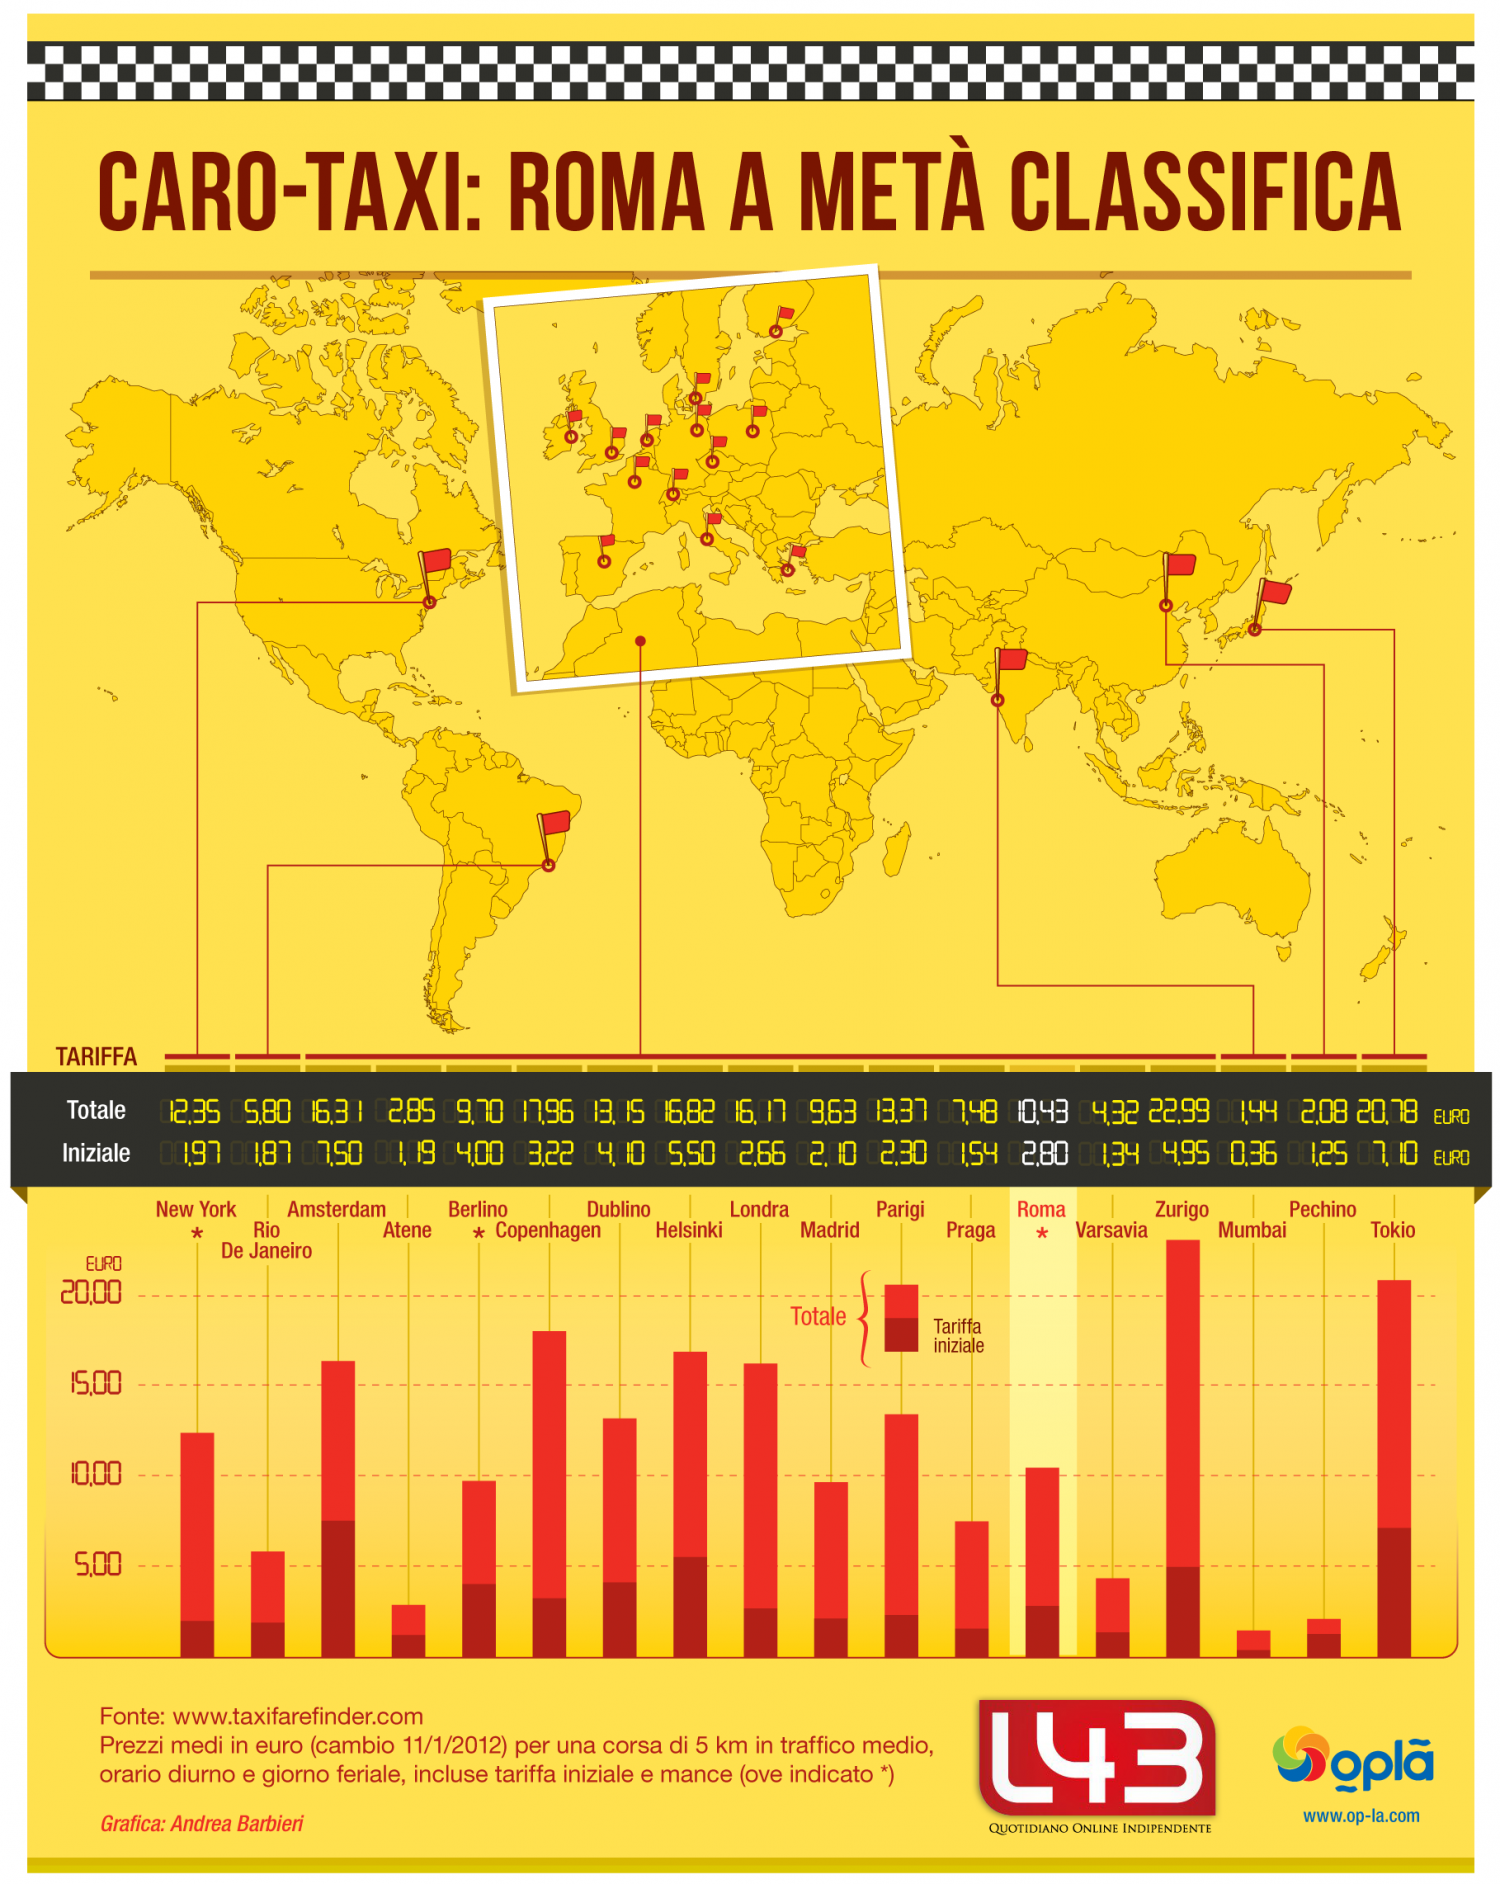 Taxi prices Infographic